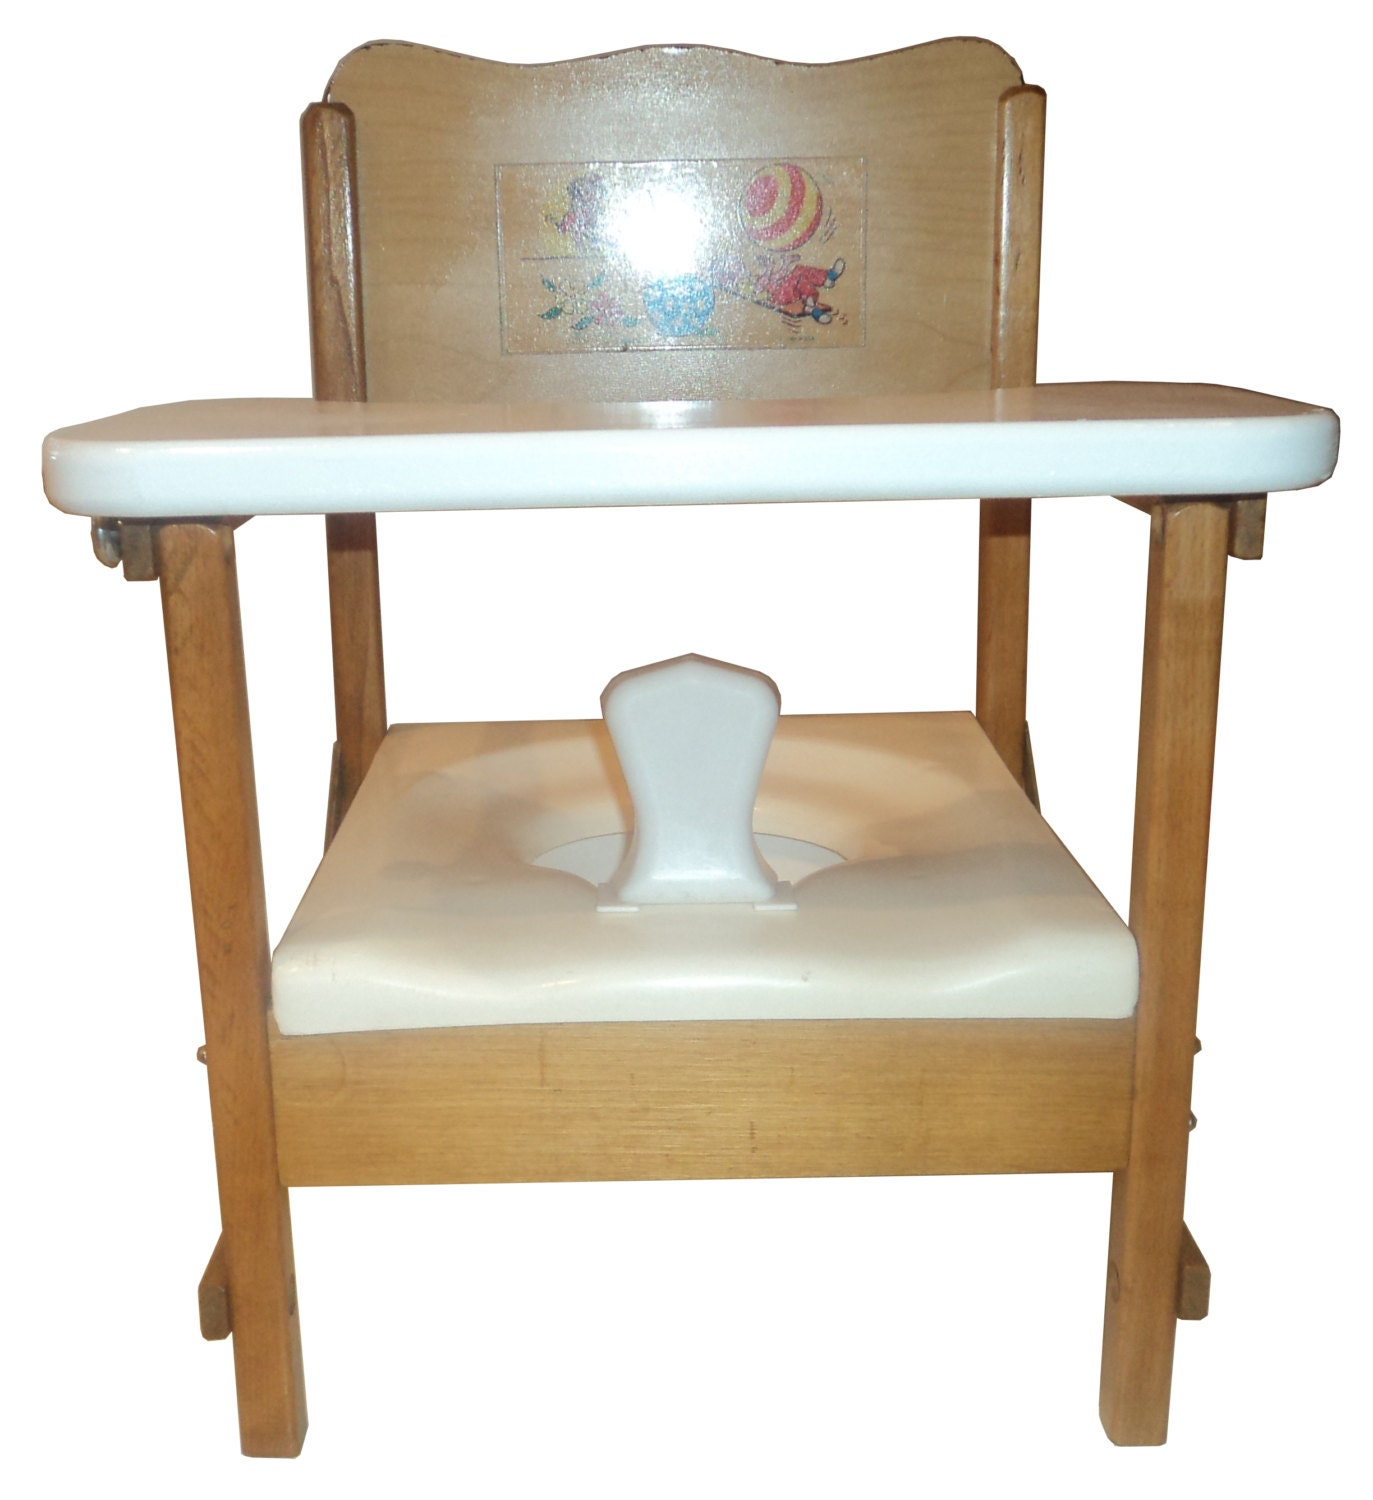 Folding Wooden Potty Chair With Tray Made By Nuline